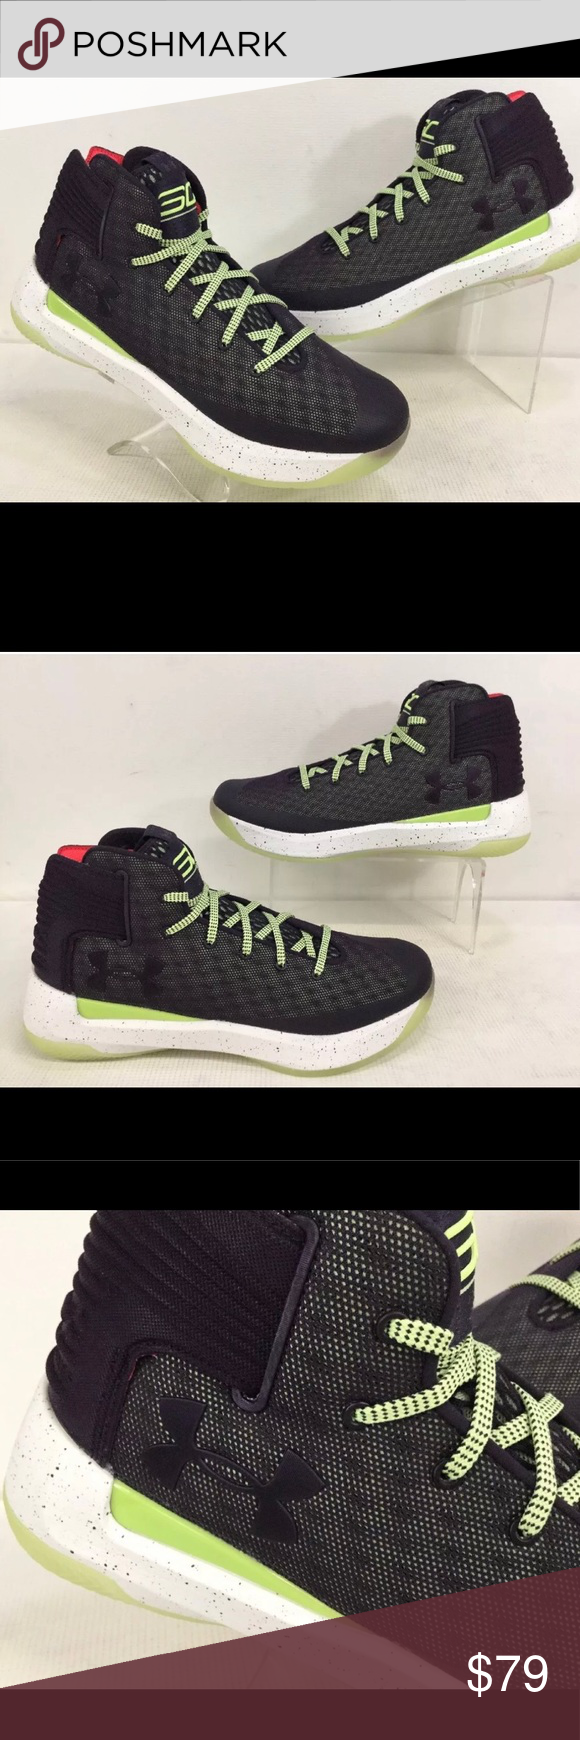 55c7352c289 Under Armour Steph Curry 3ZERO Basketball Shoes New with tags Under Armour  Shoes Athletic Shoes